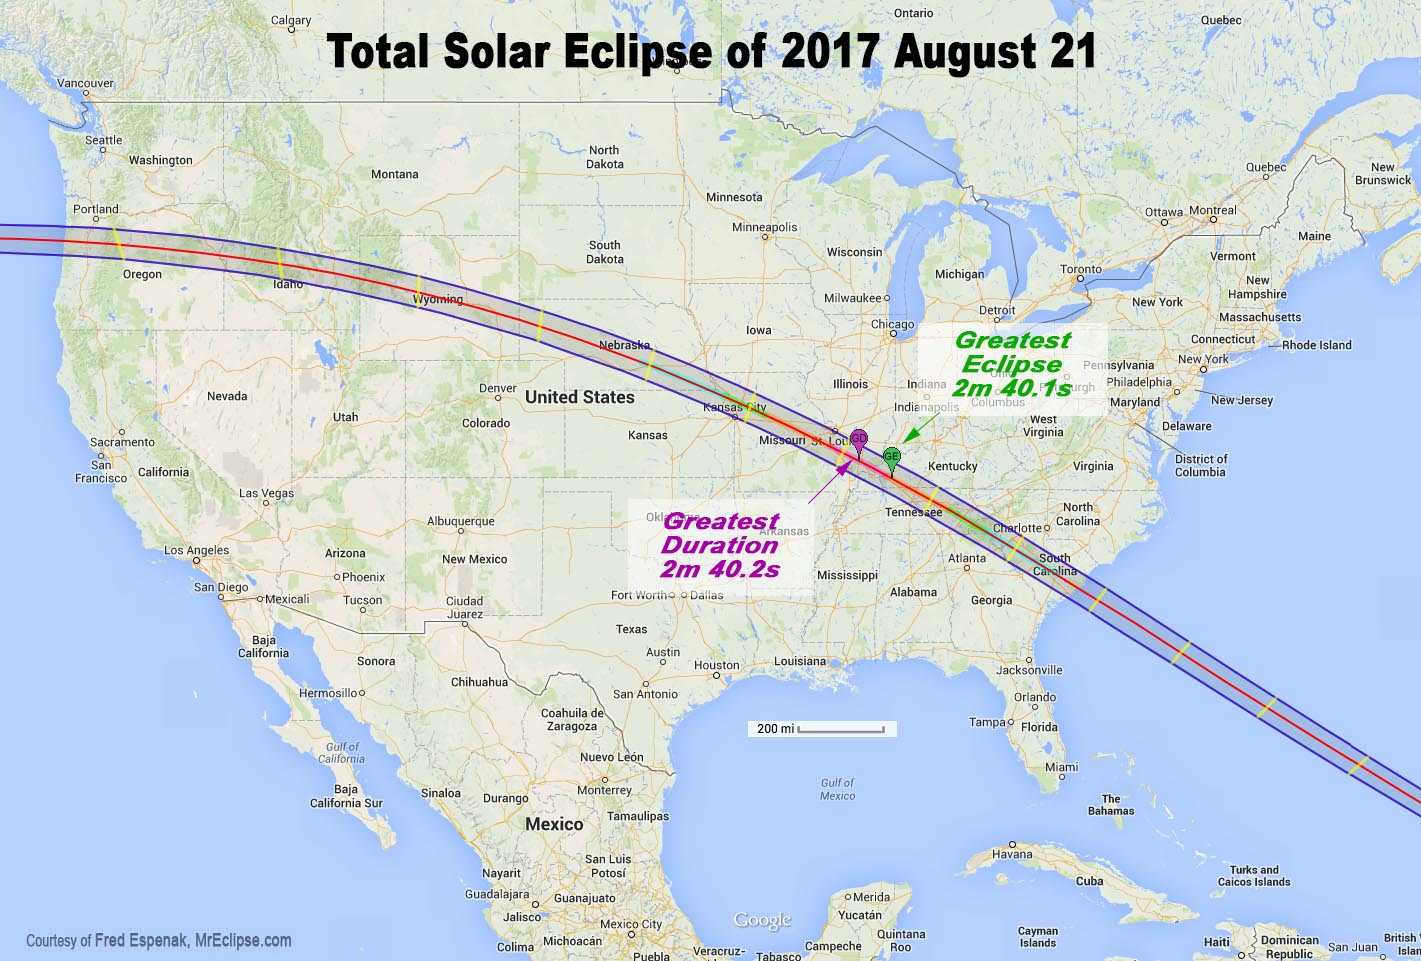 It's Coming! Get Ready for the 'Great American Total Solar Eclipse' of 2017